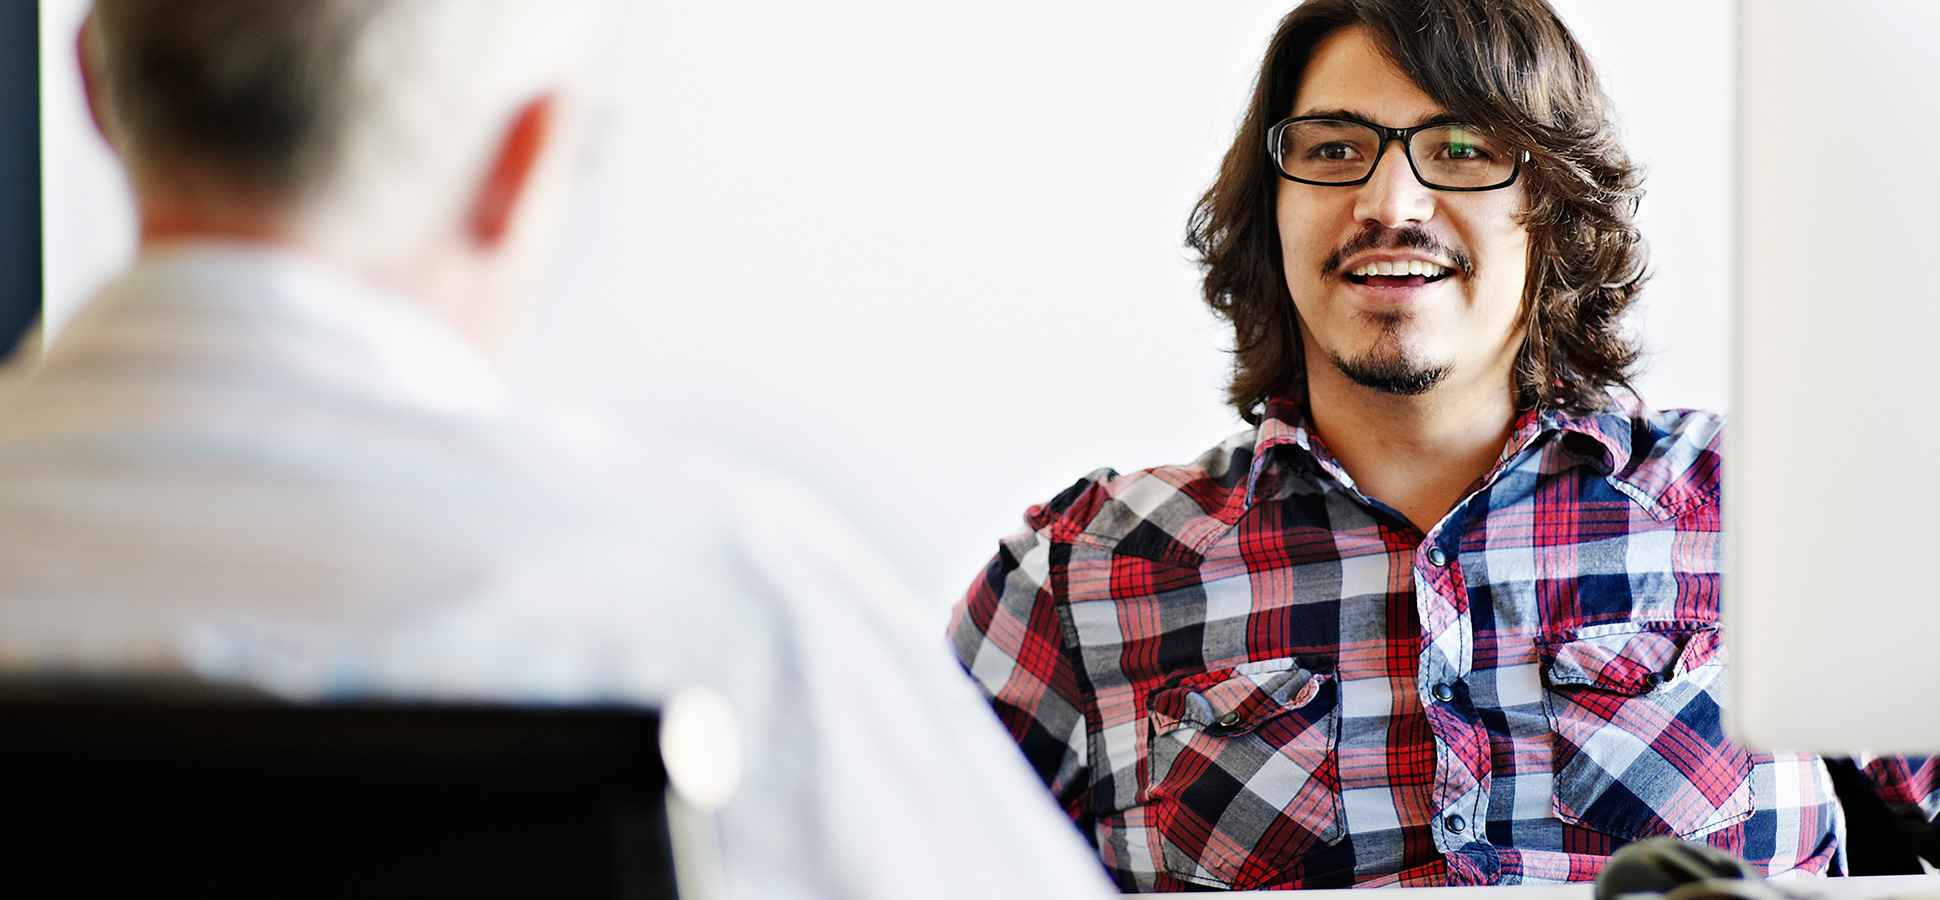 12 Questions You Should Ask Your Mentor ASAP